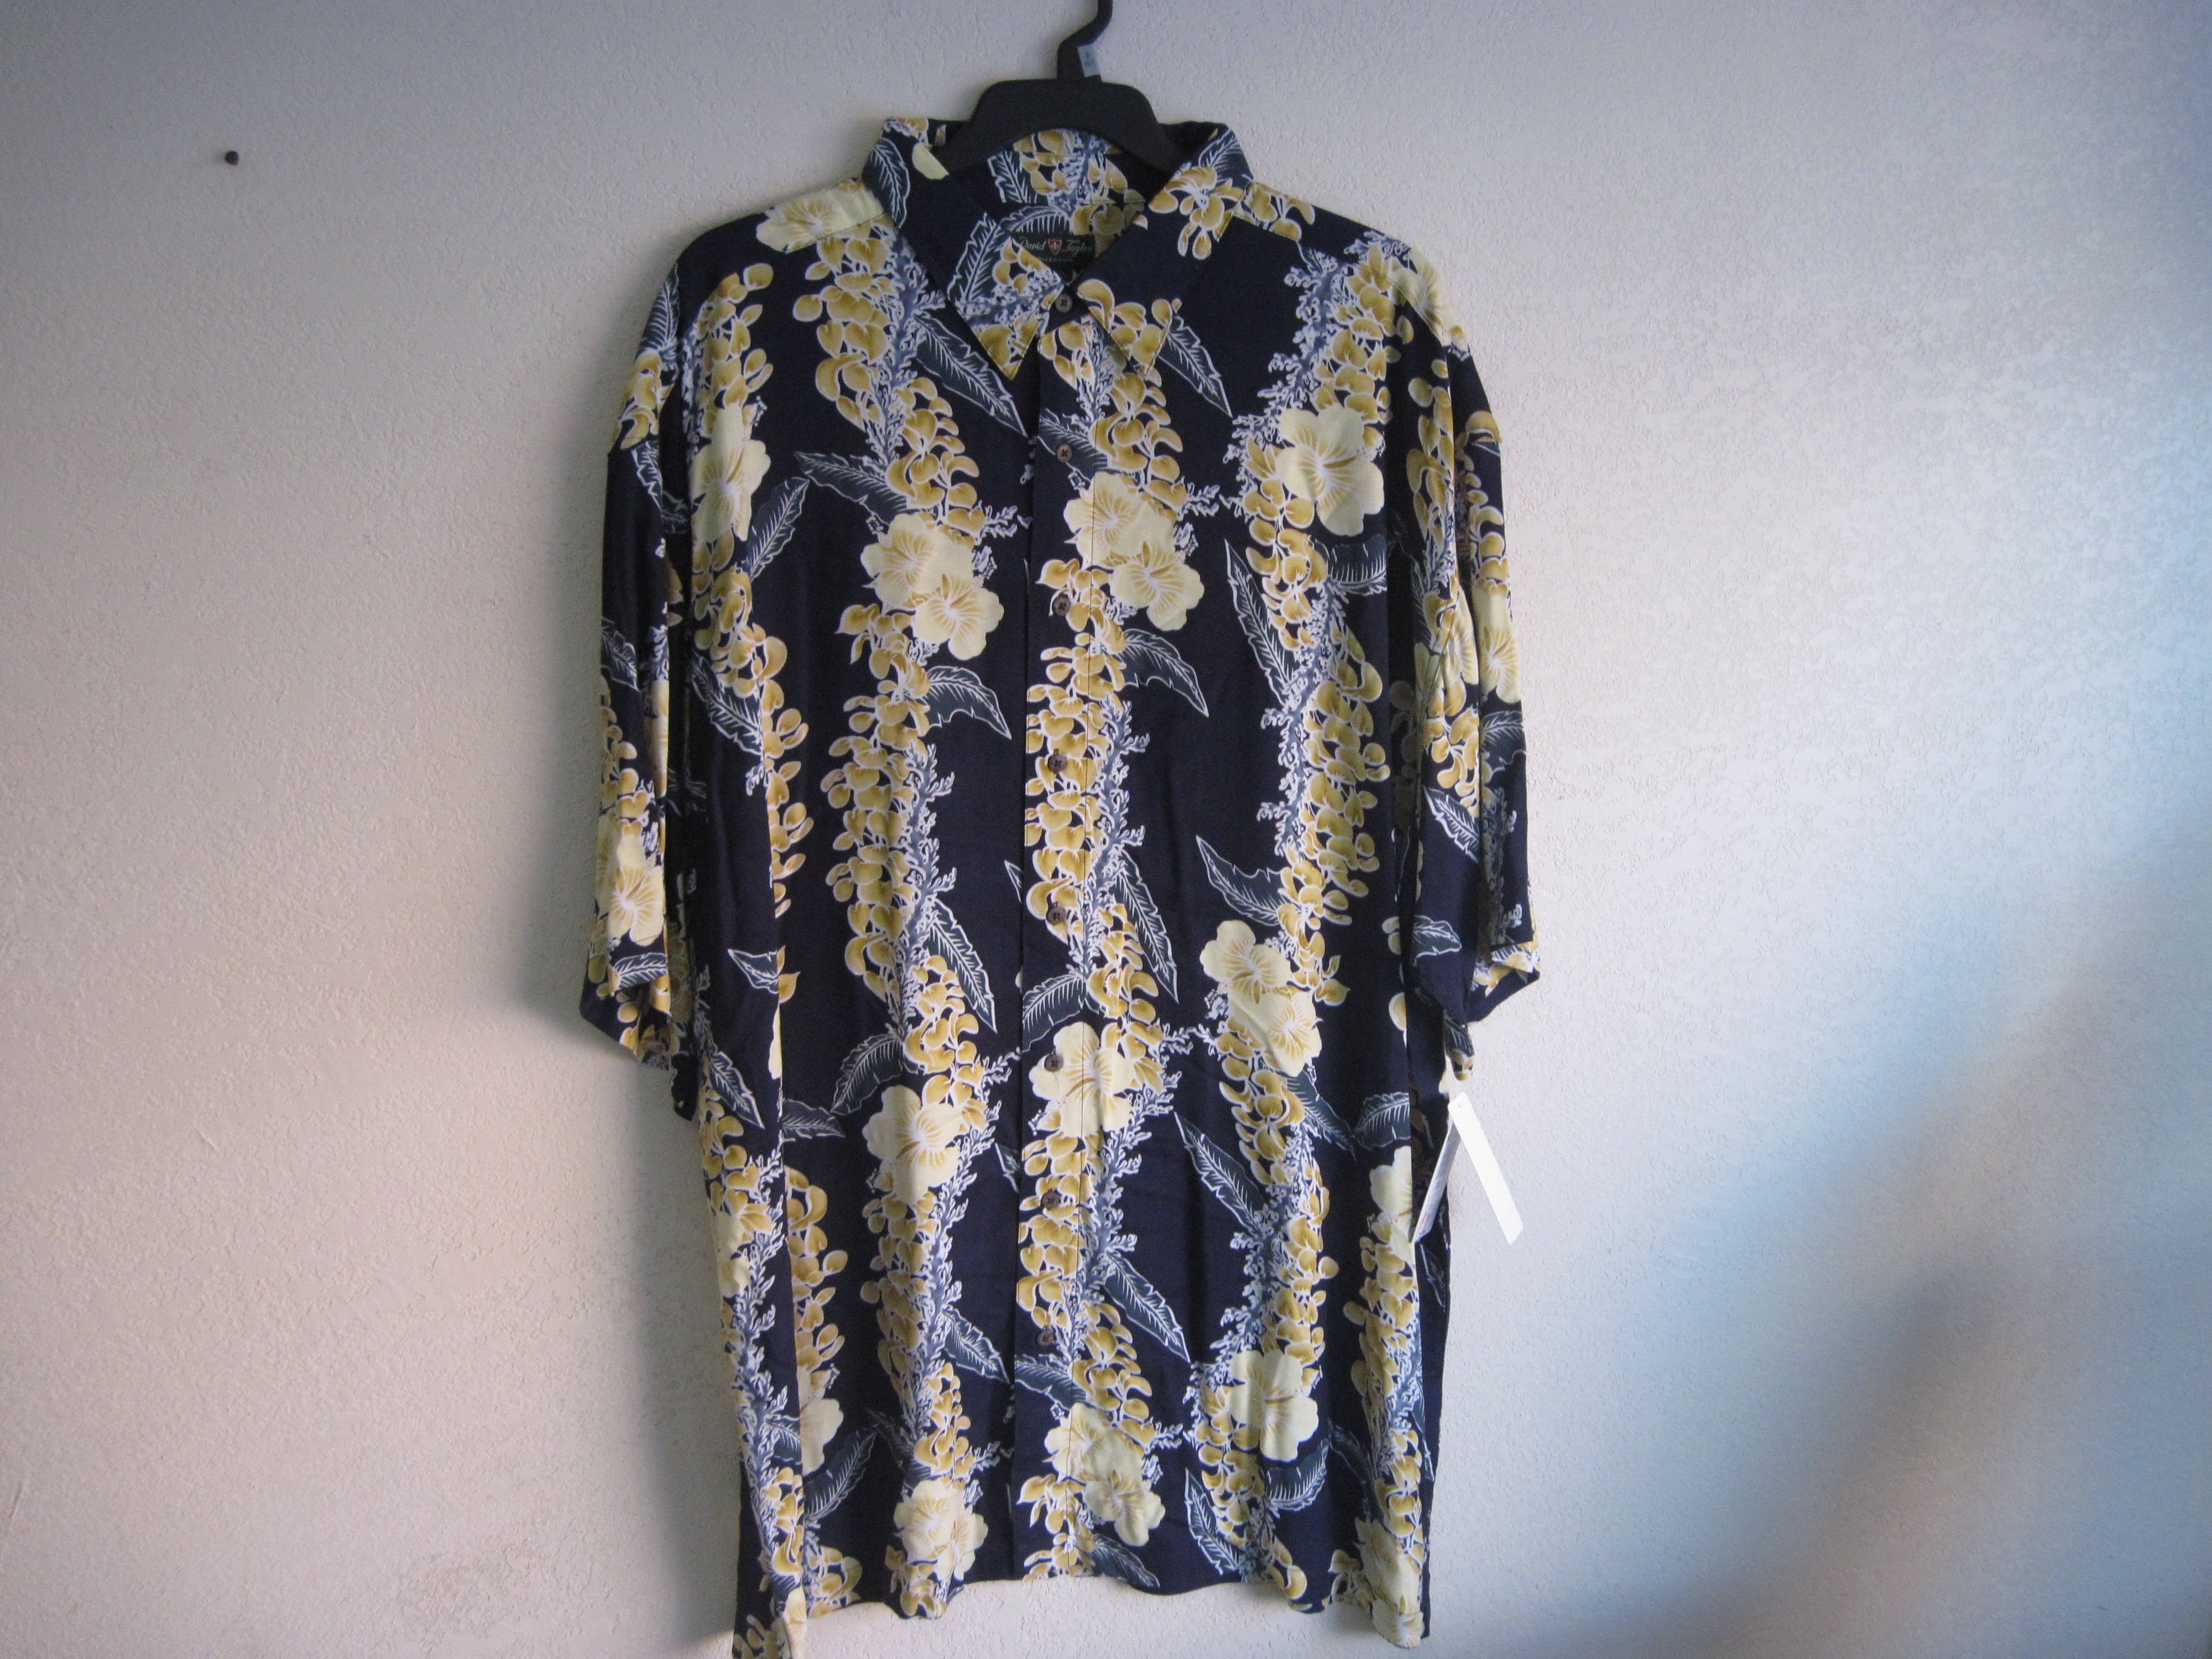 David Taylor Sz 3XLT Mens Floral Design Shirt (drk blue & yellow